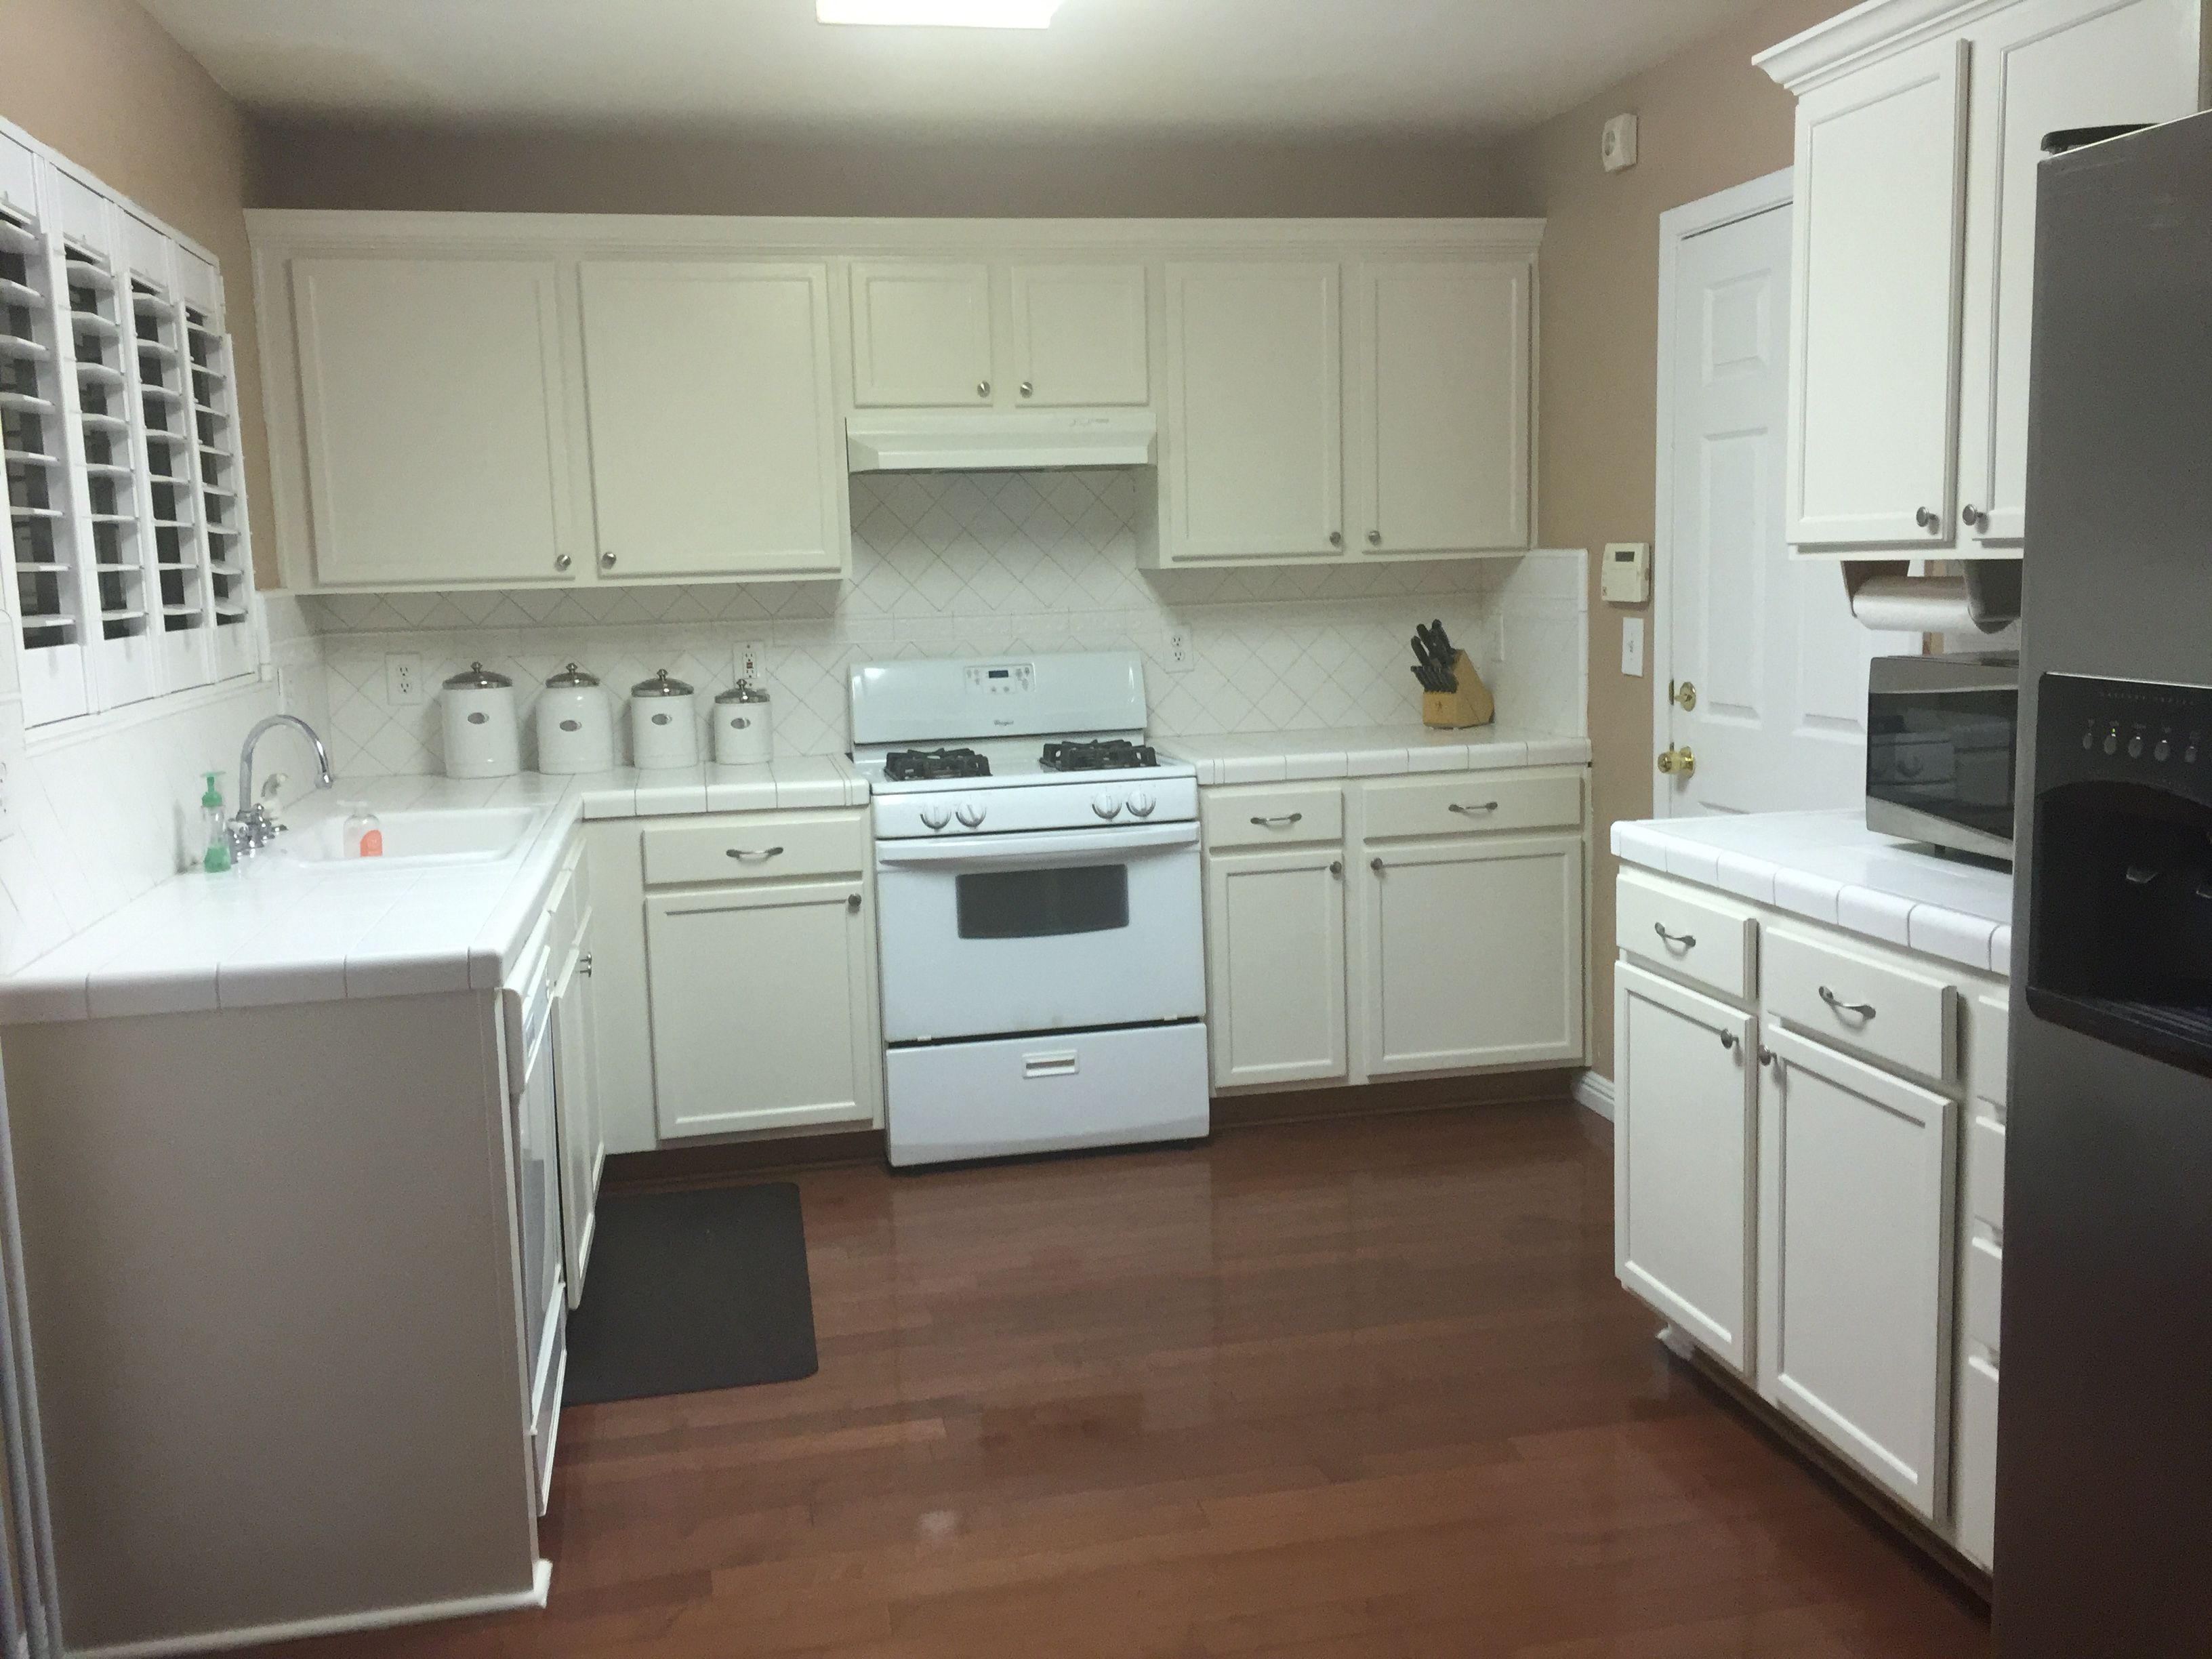 Kitchen Cabinets, Kitchen Cabinet Paint, Microwave, Oven, Budget, Stain Cabinets,